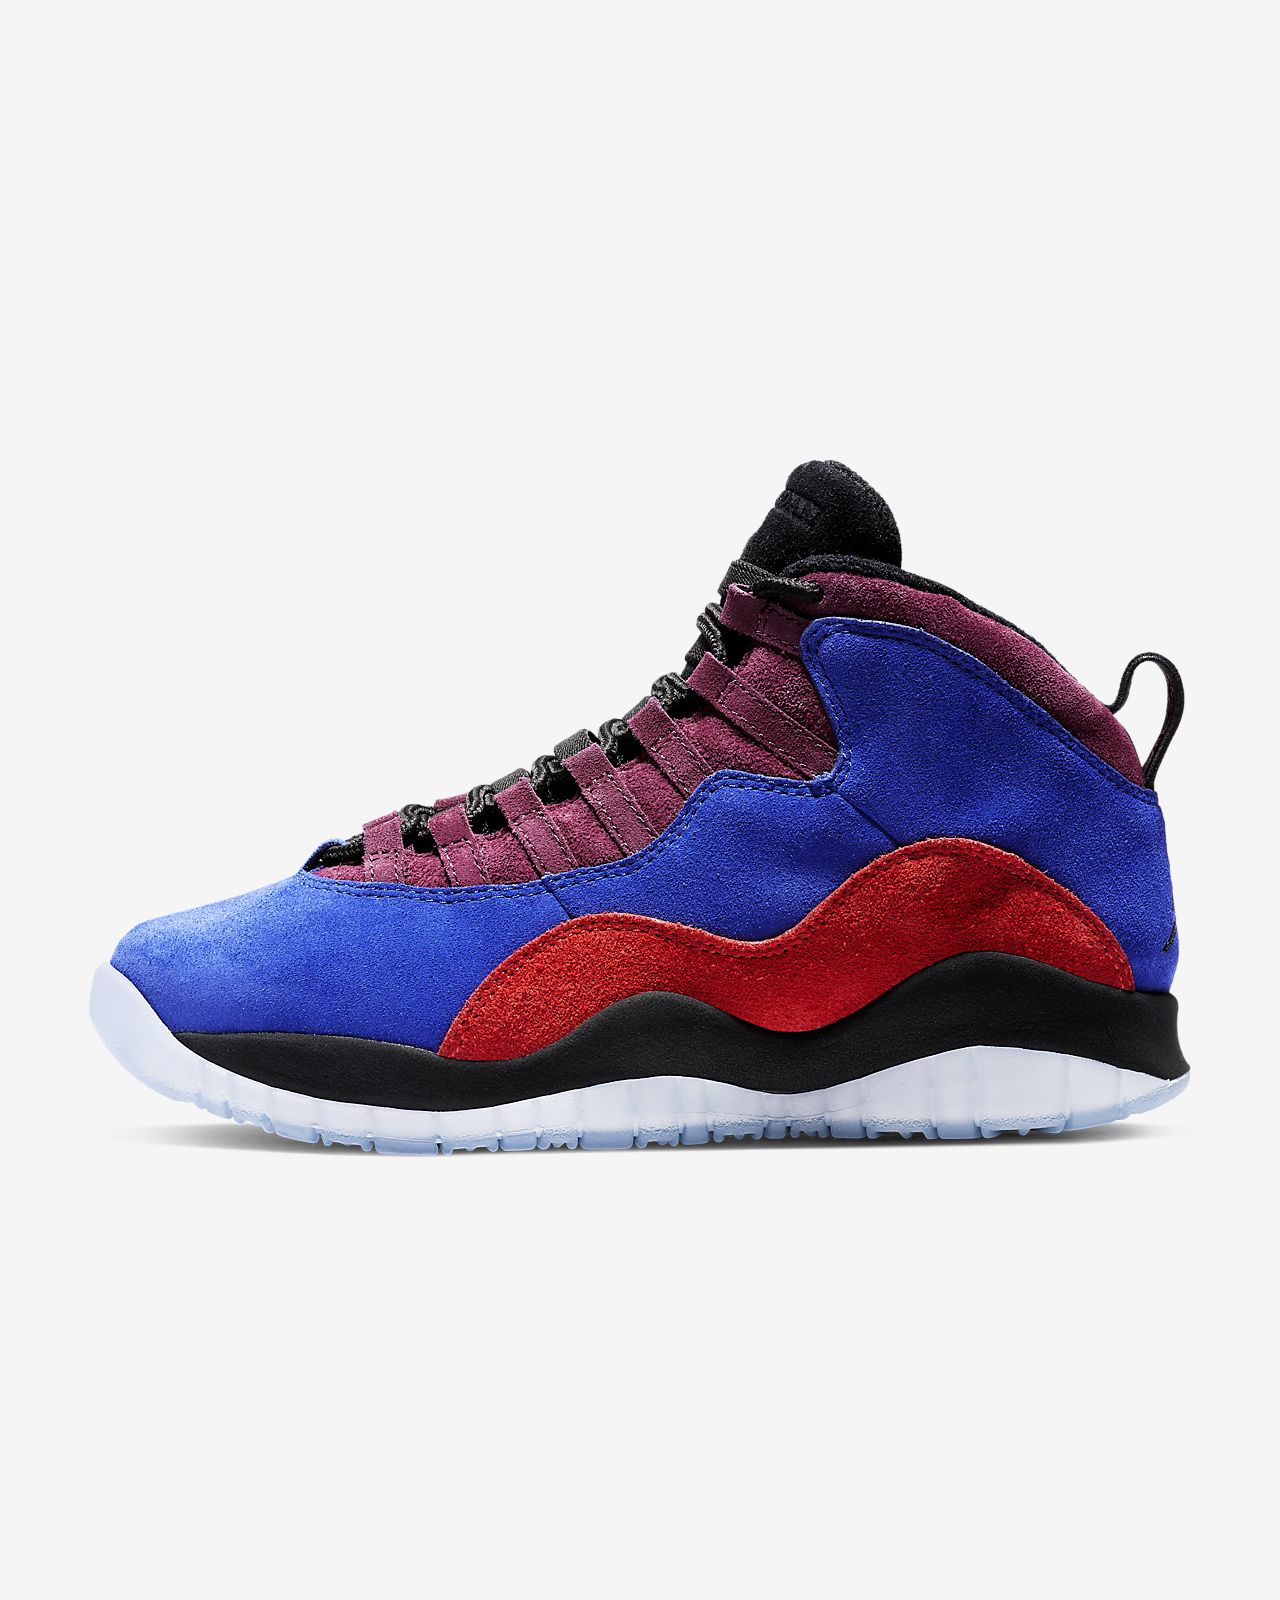 40fa5b63789e99 Air Jordan 10 Retro Women s Shoe. Nike.com